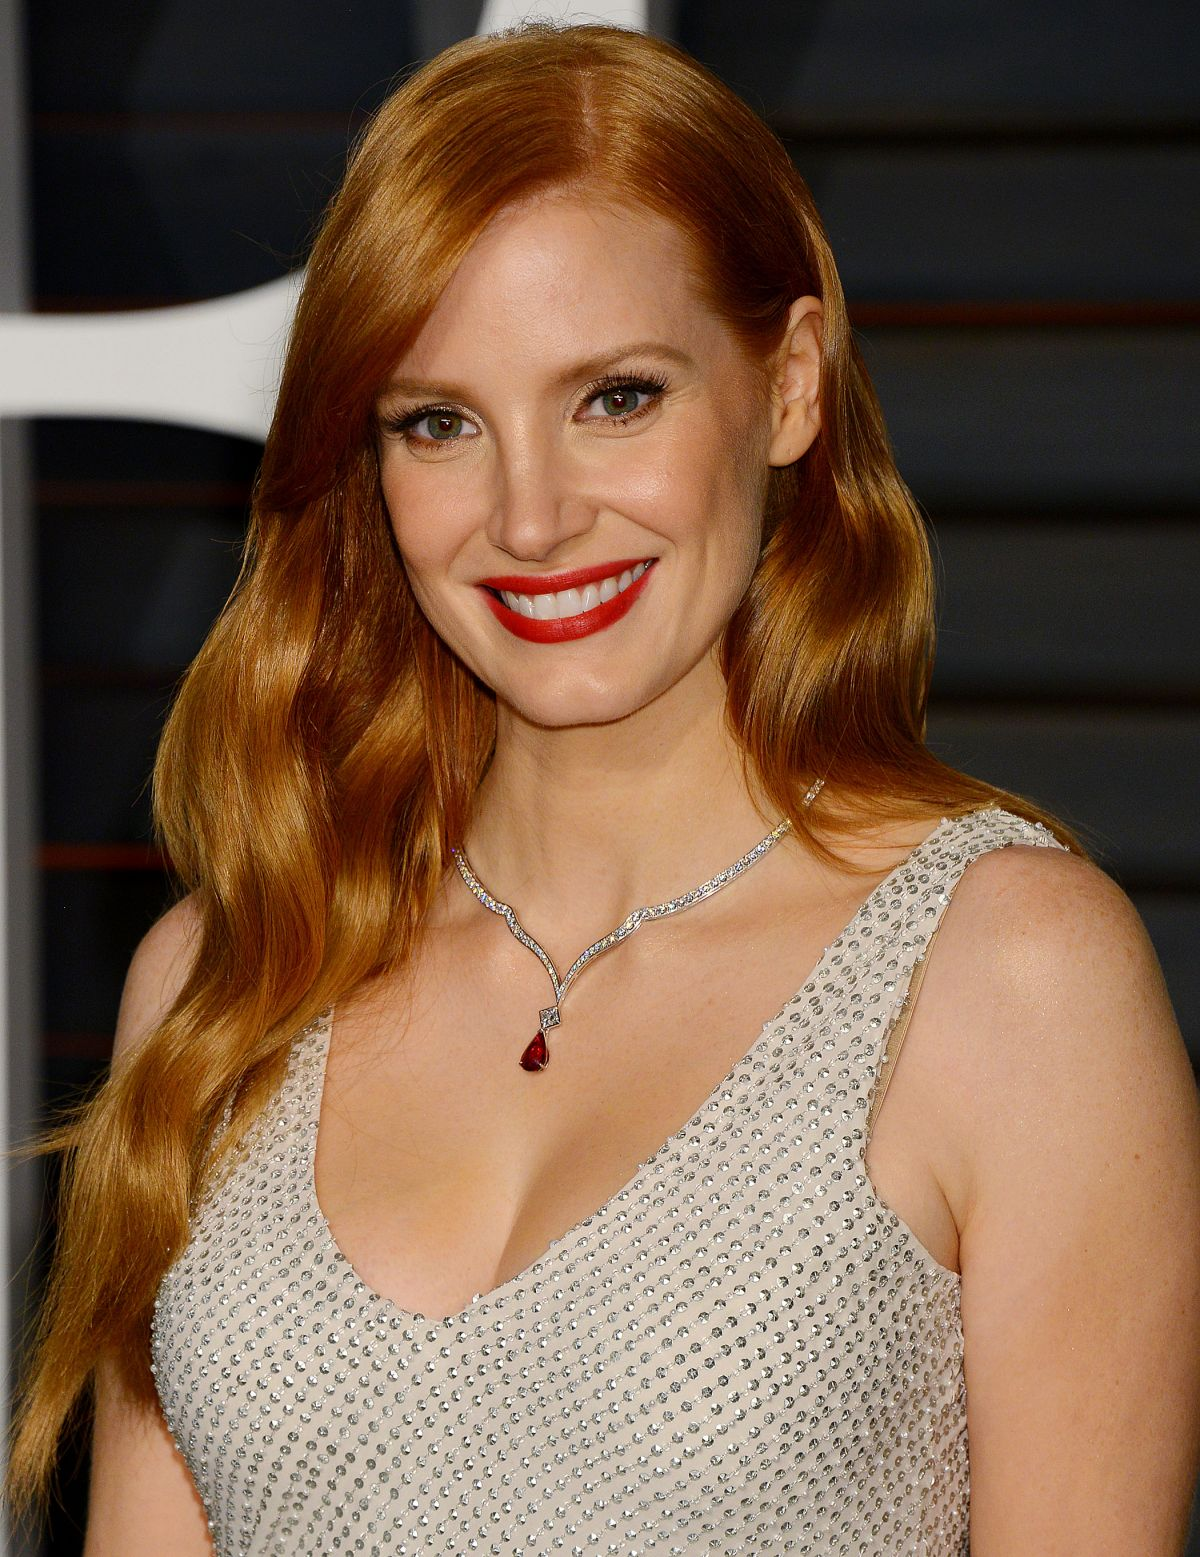 http://www.hawtcelebs.com/wp-content/uploads/2015/02/jessica-chastain-at-vanity-fair-oscar-party-in-hollywood_1.jpg